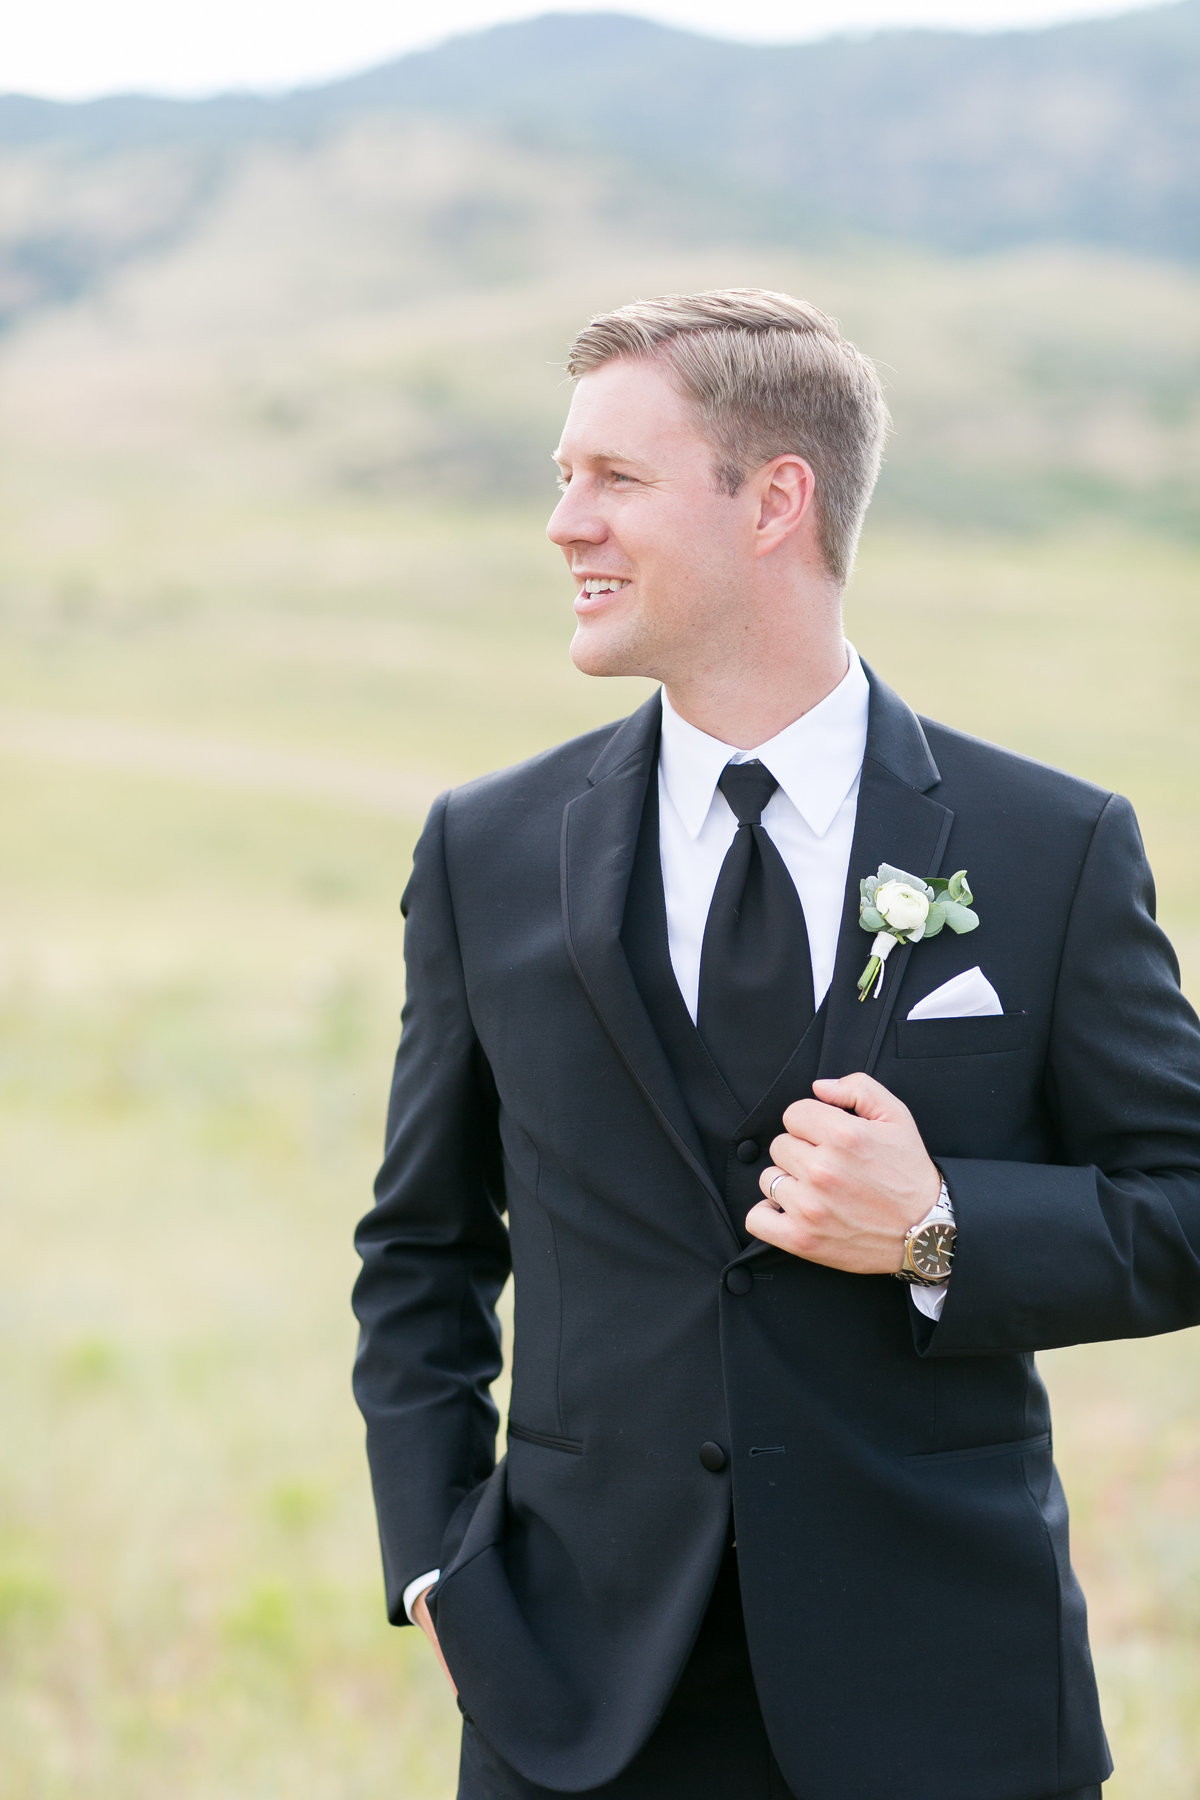 Groom standing in front of mountains